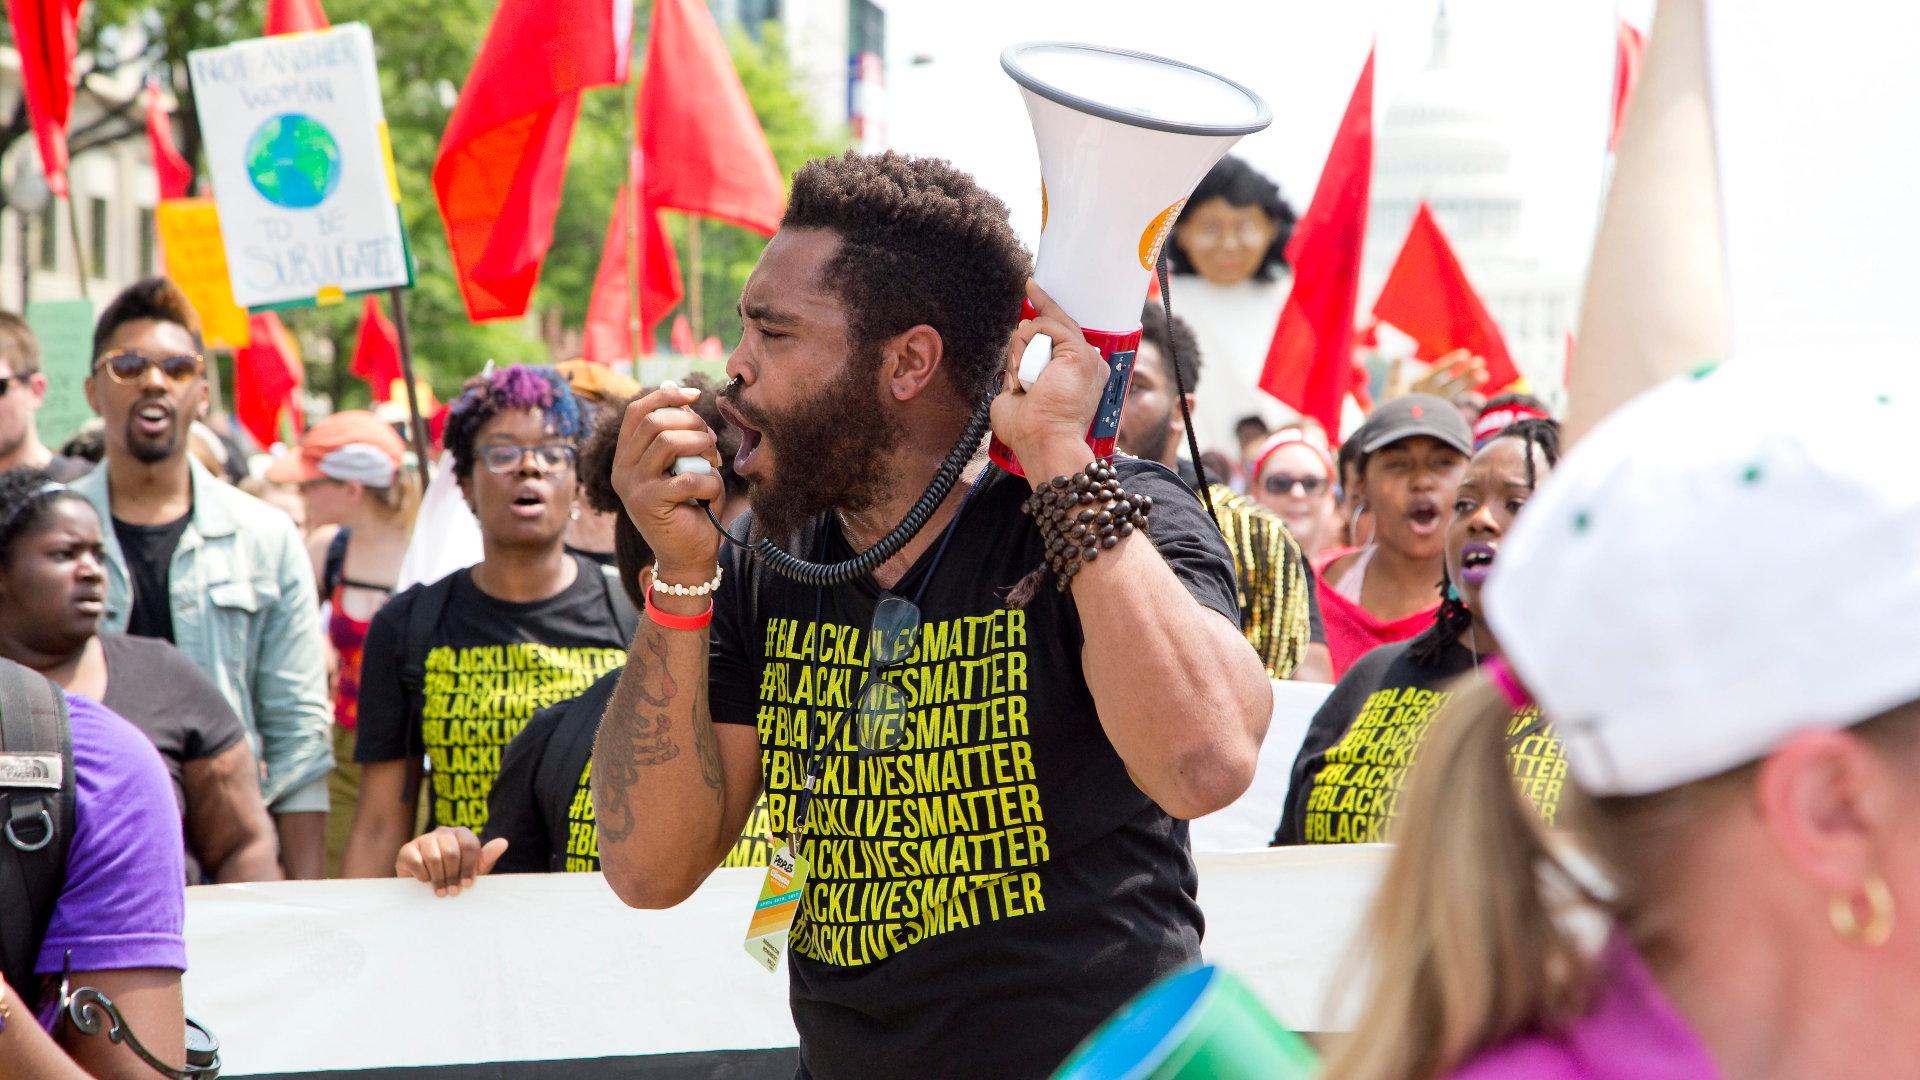 black lives matter protests and Public Order Act